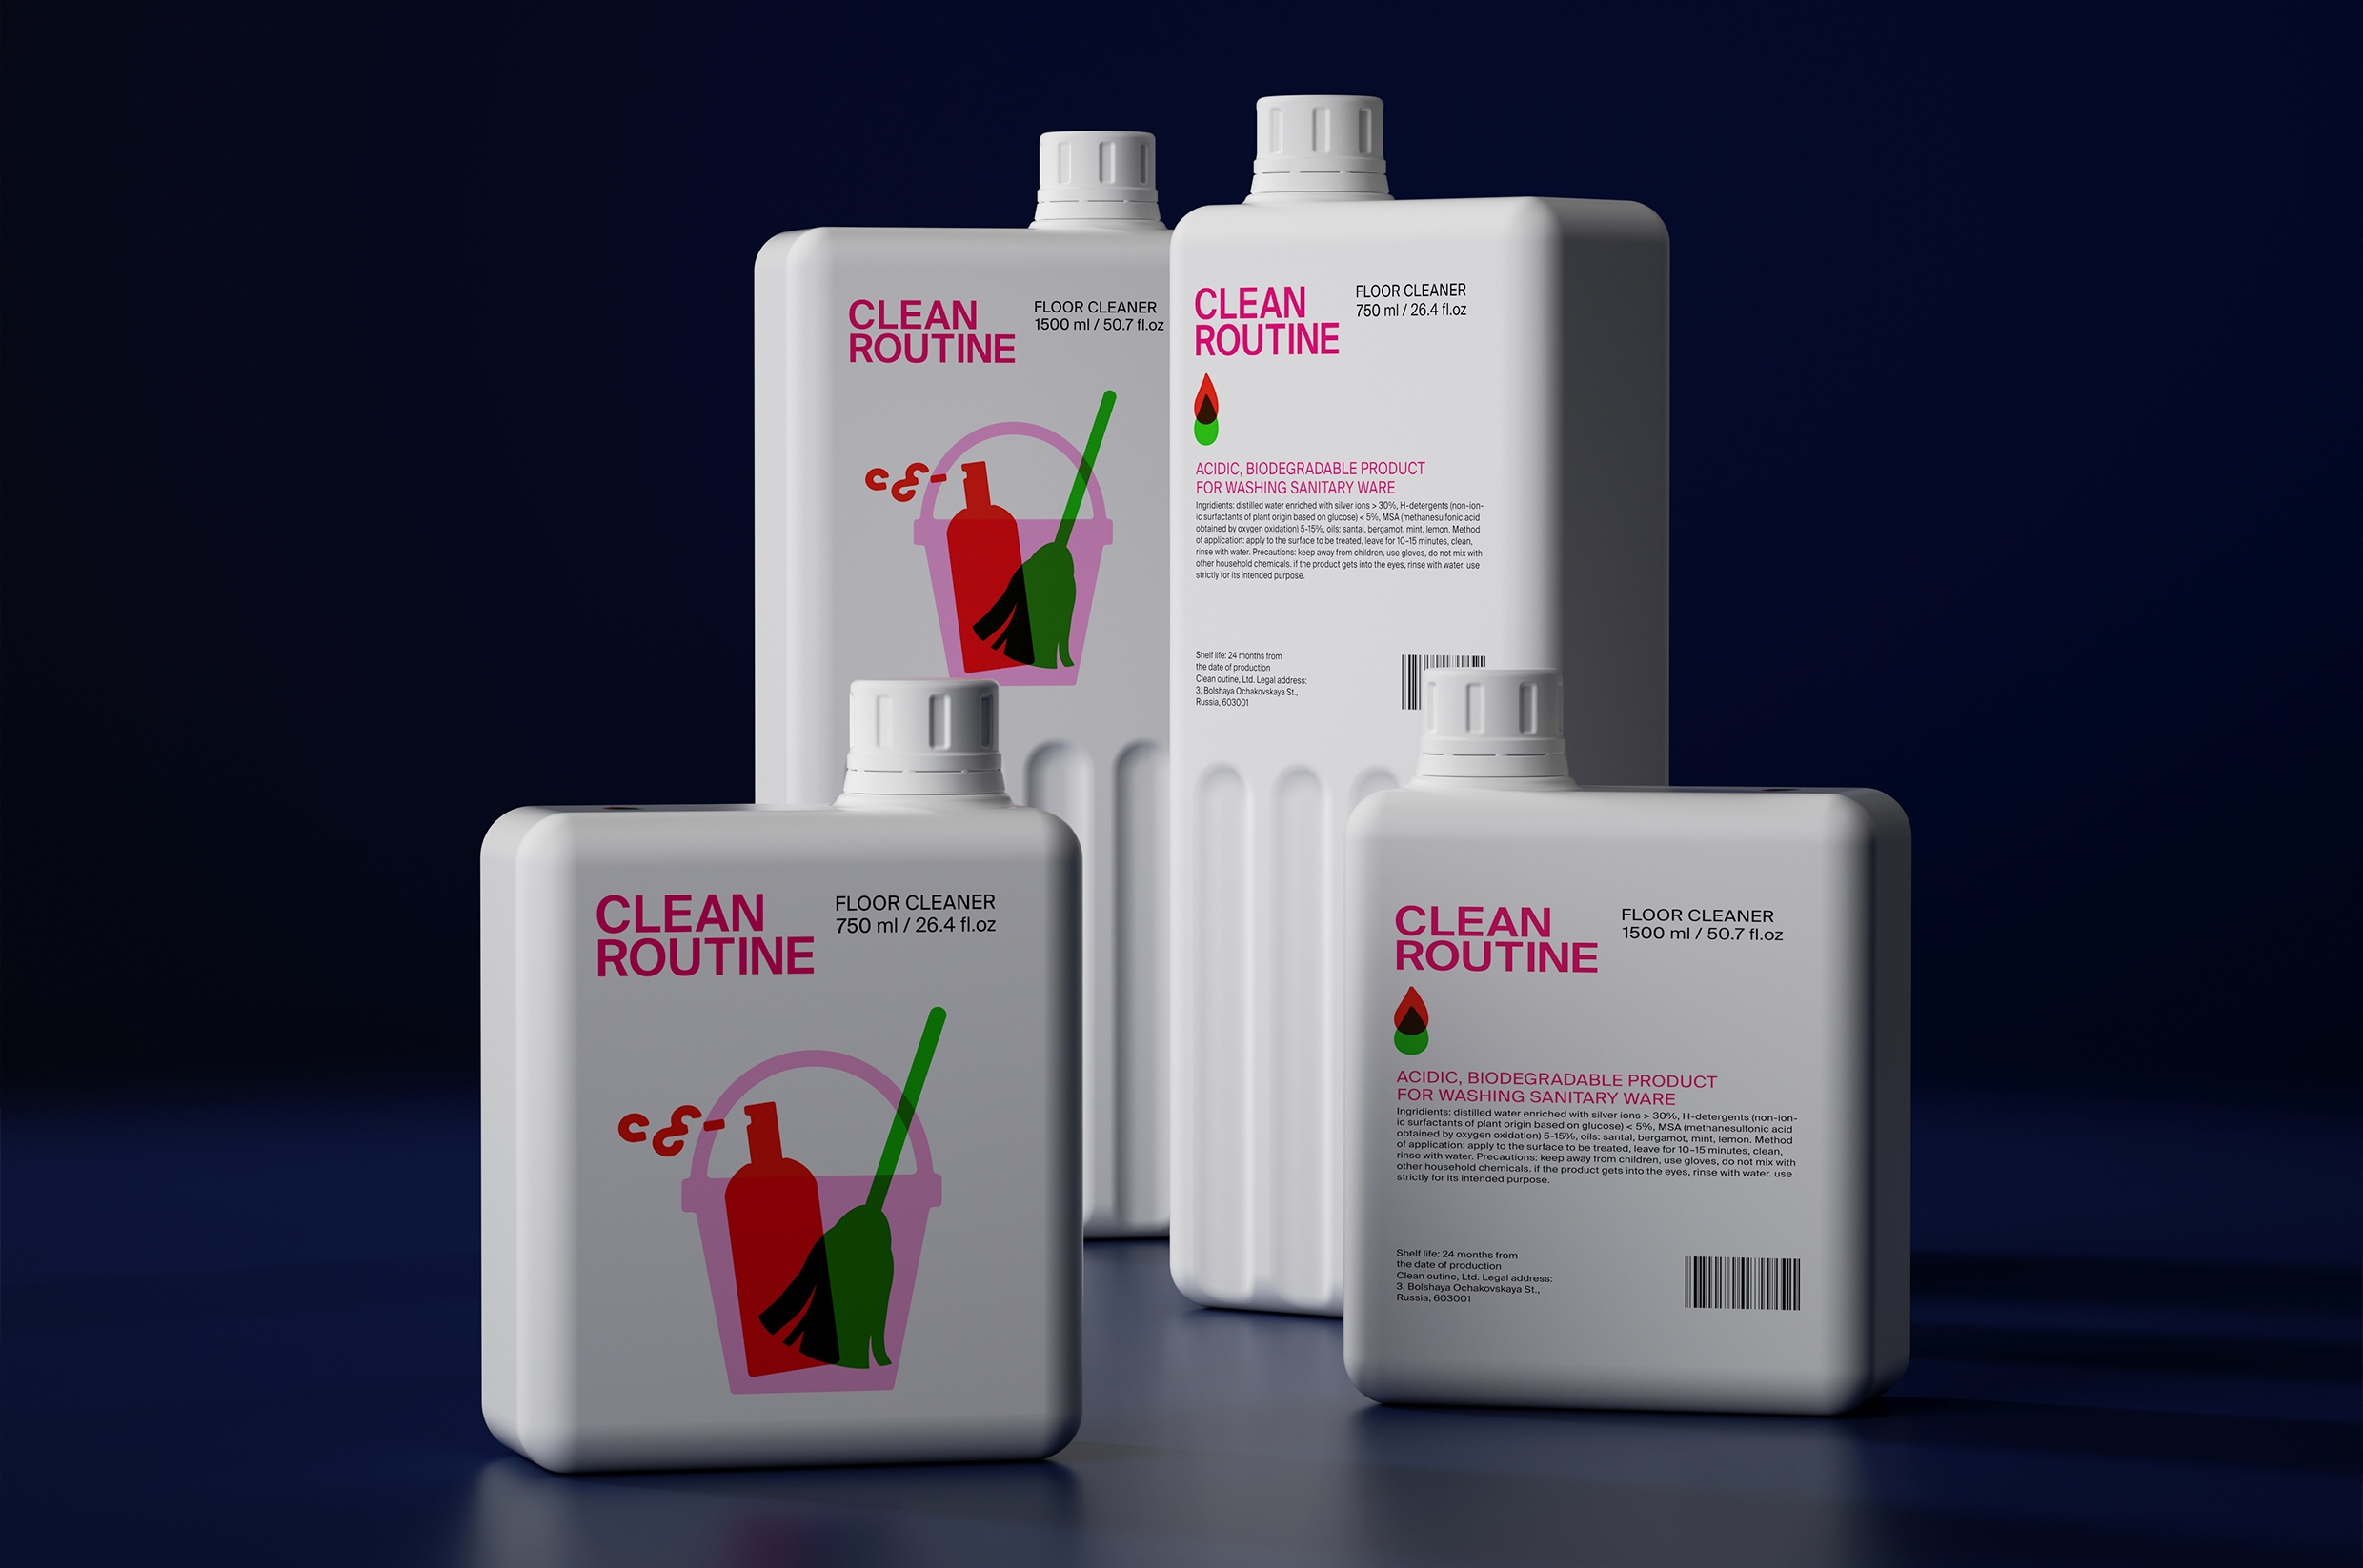 Packaging Design for Clean Routine Cleaning Products